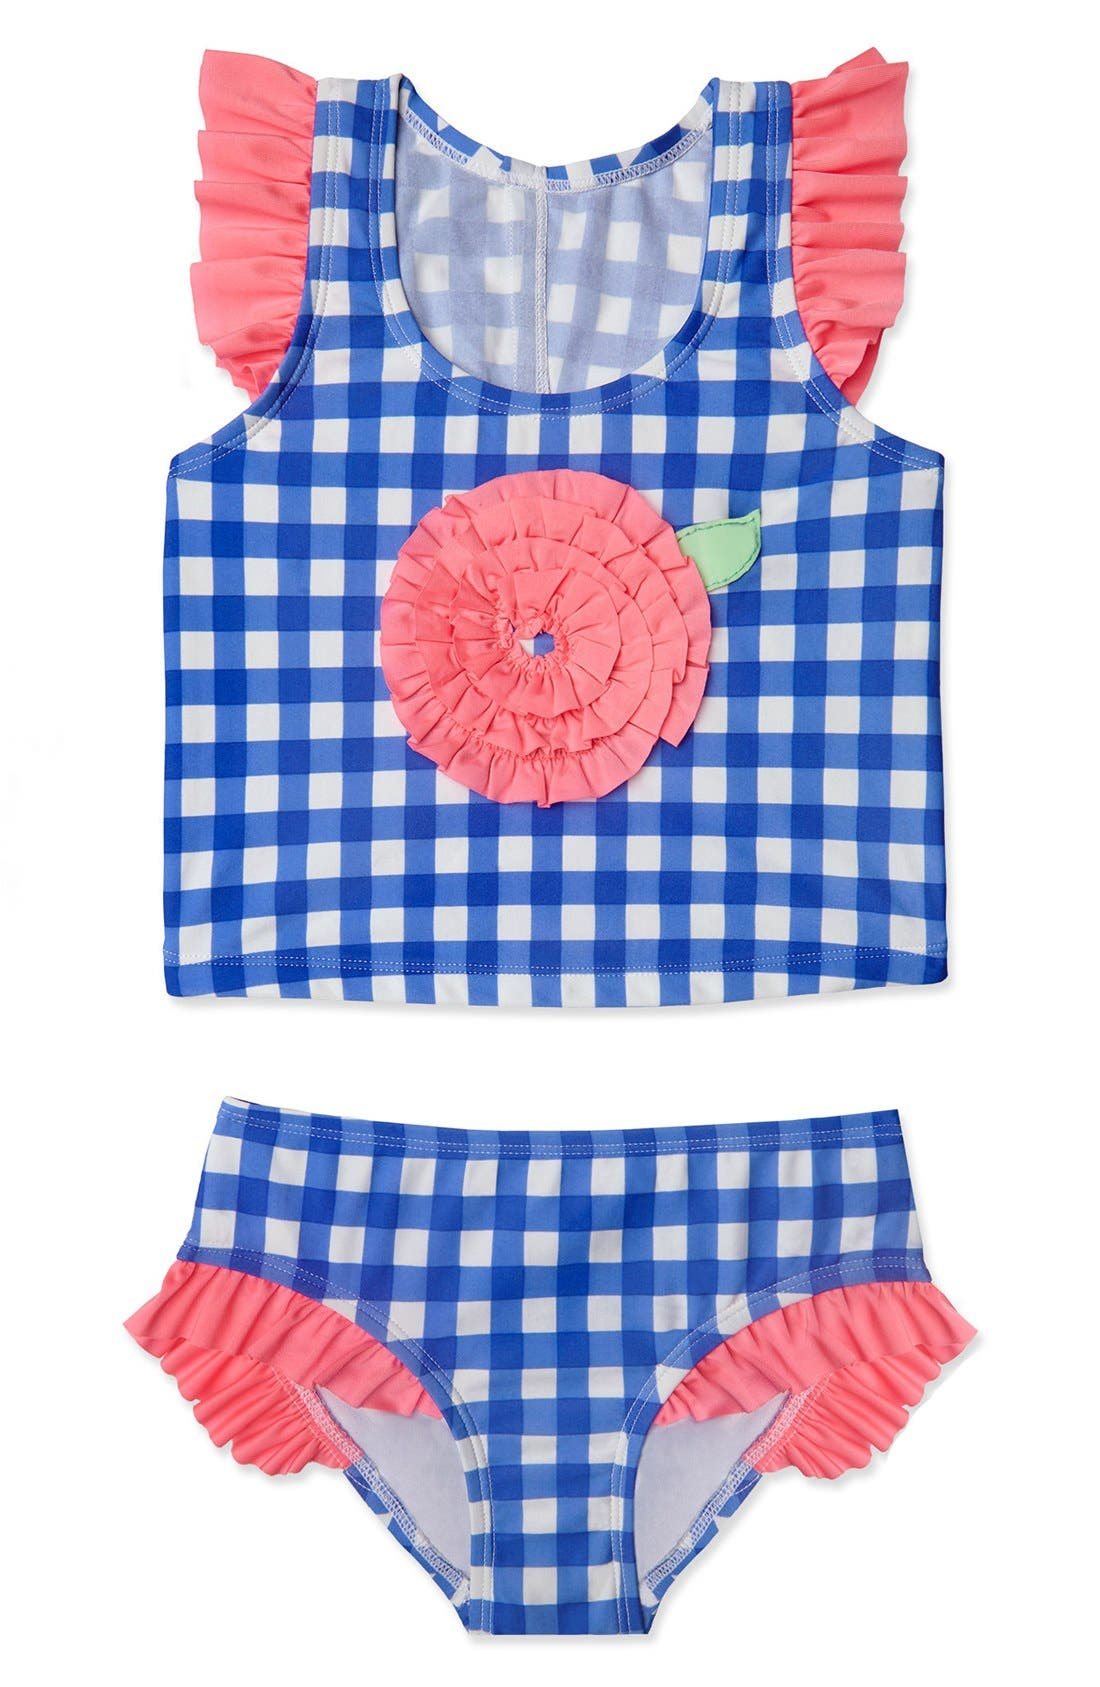 Alternate Image 1 Selected - Hula Star Gingham Two-Piece Swimsuit (Toddler Girls & Little Girls)